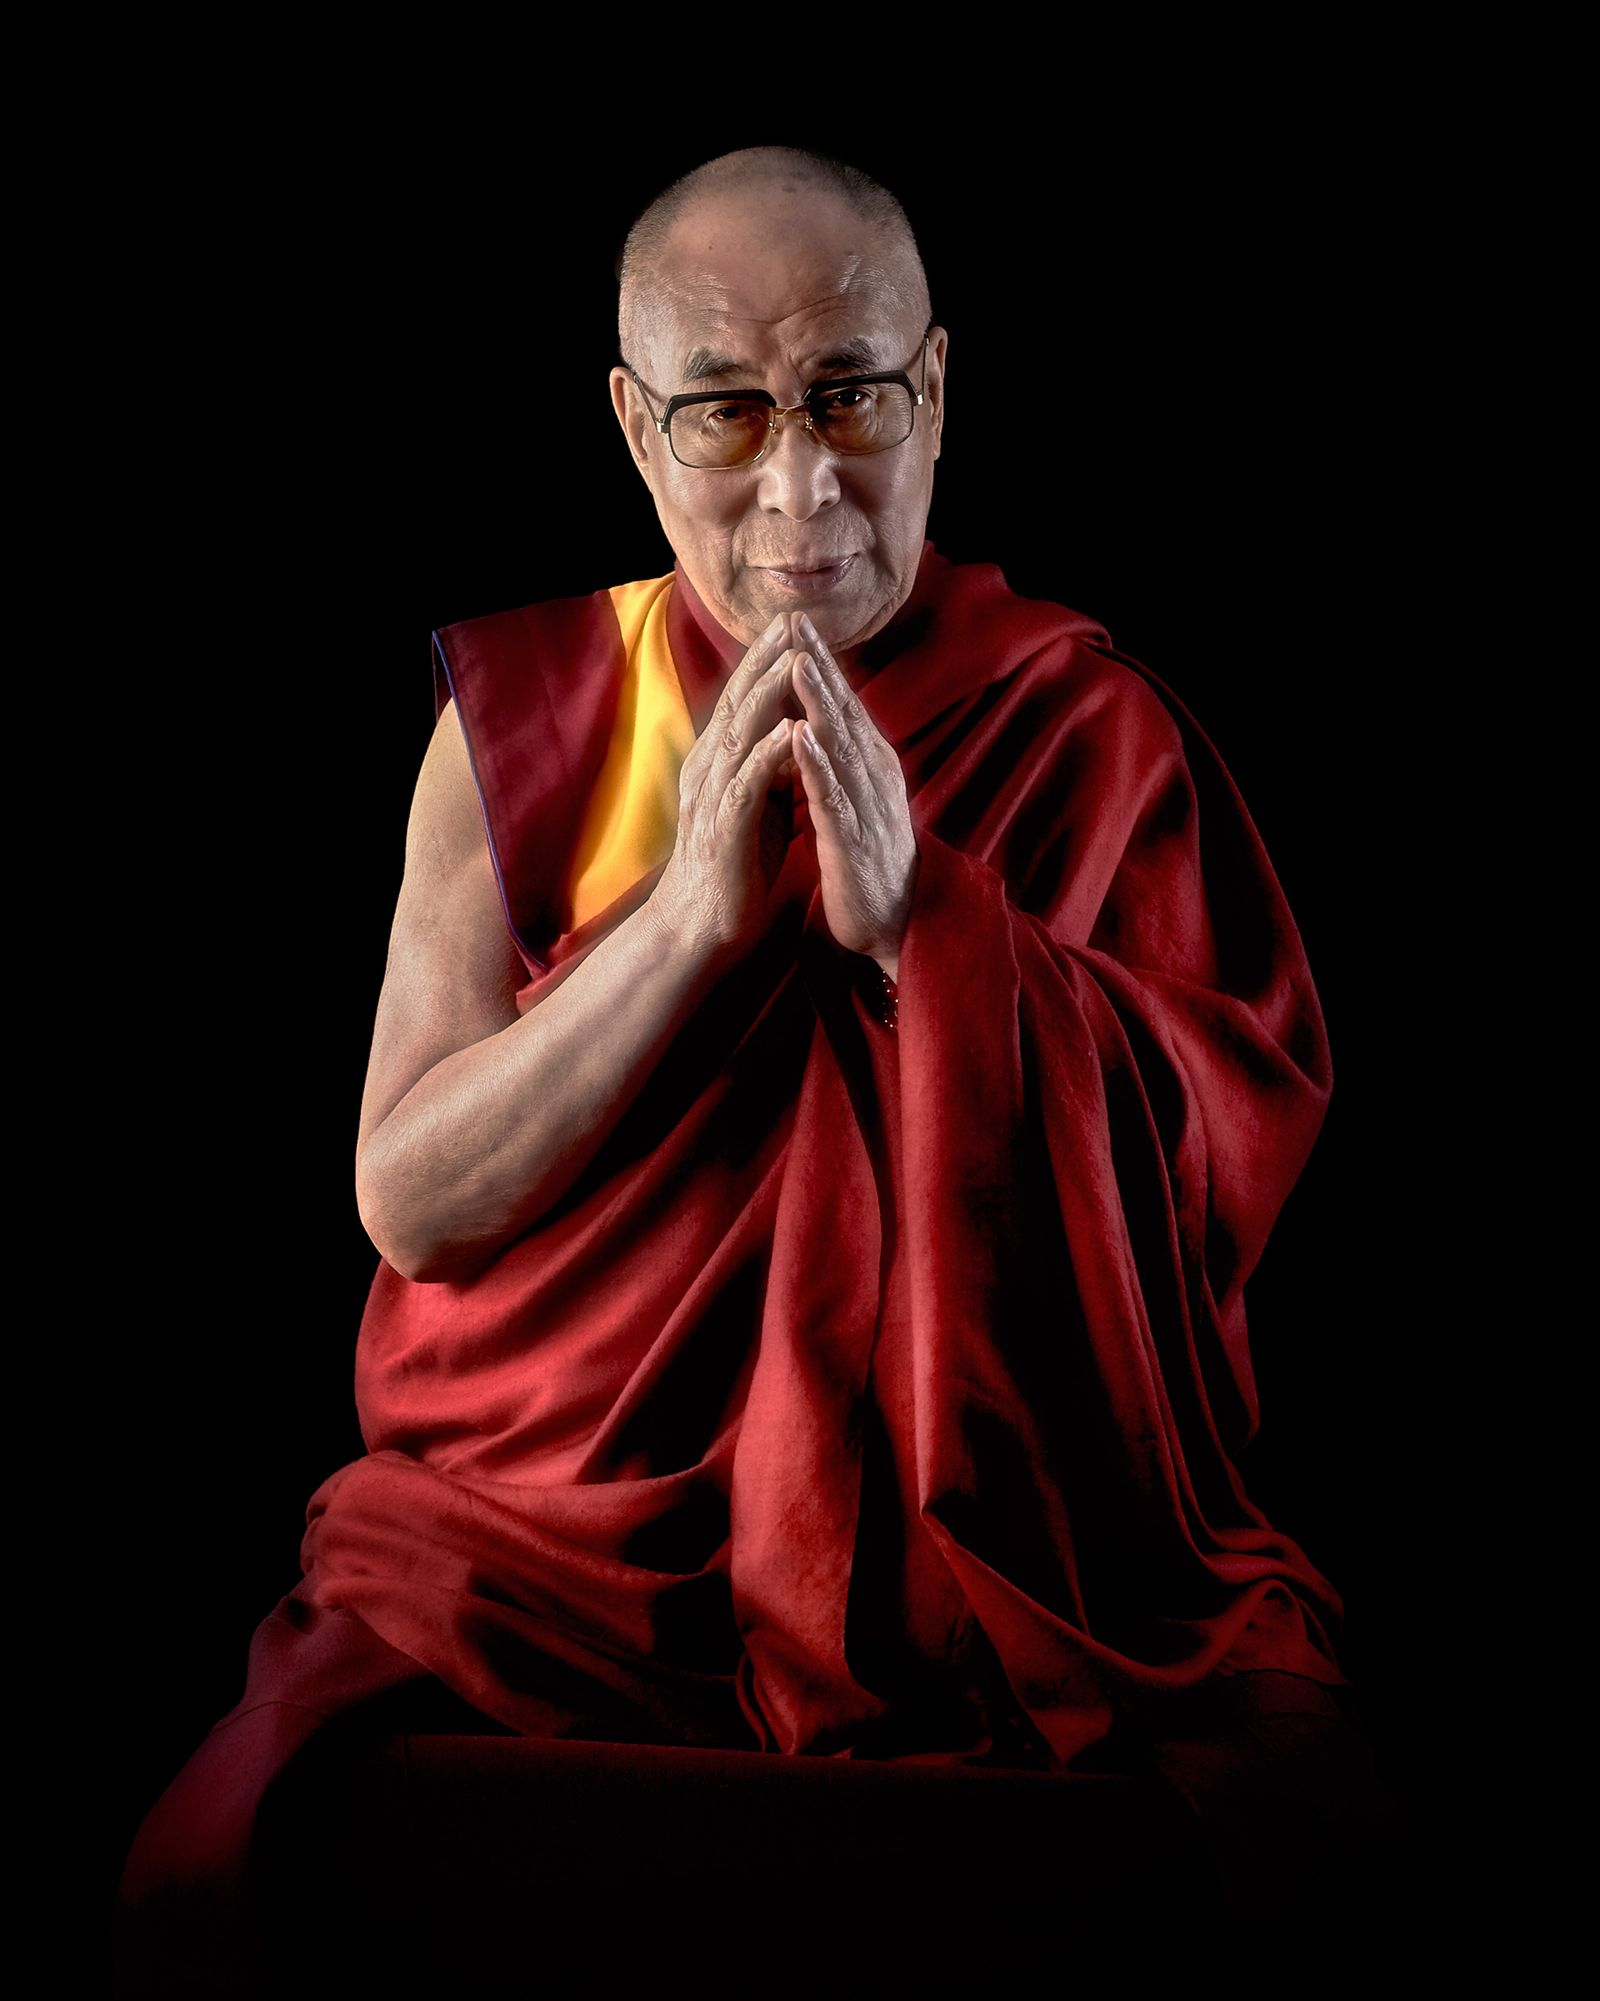 'Compassion' - The Dalai Lama At 80